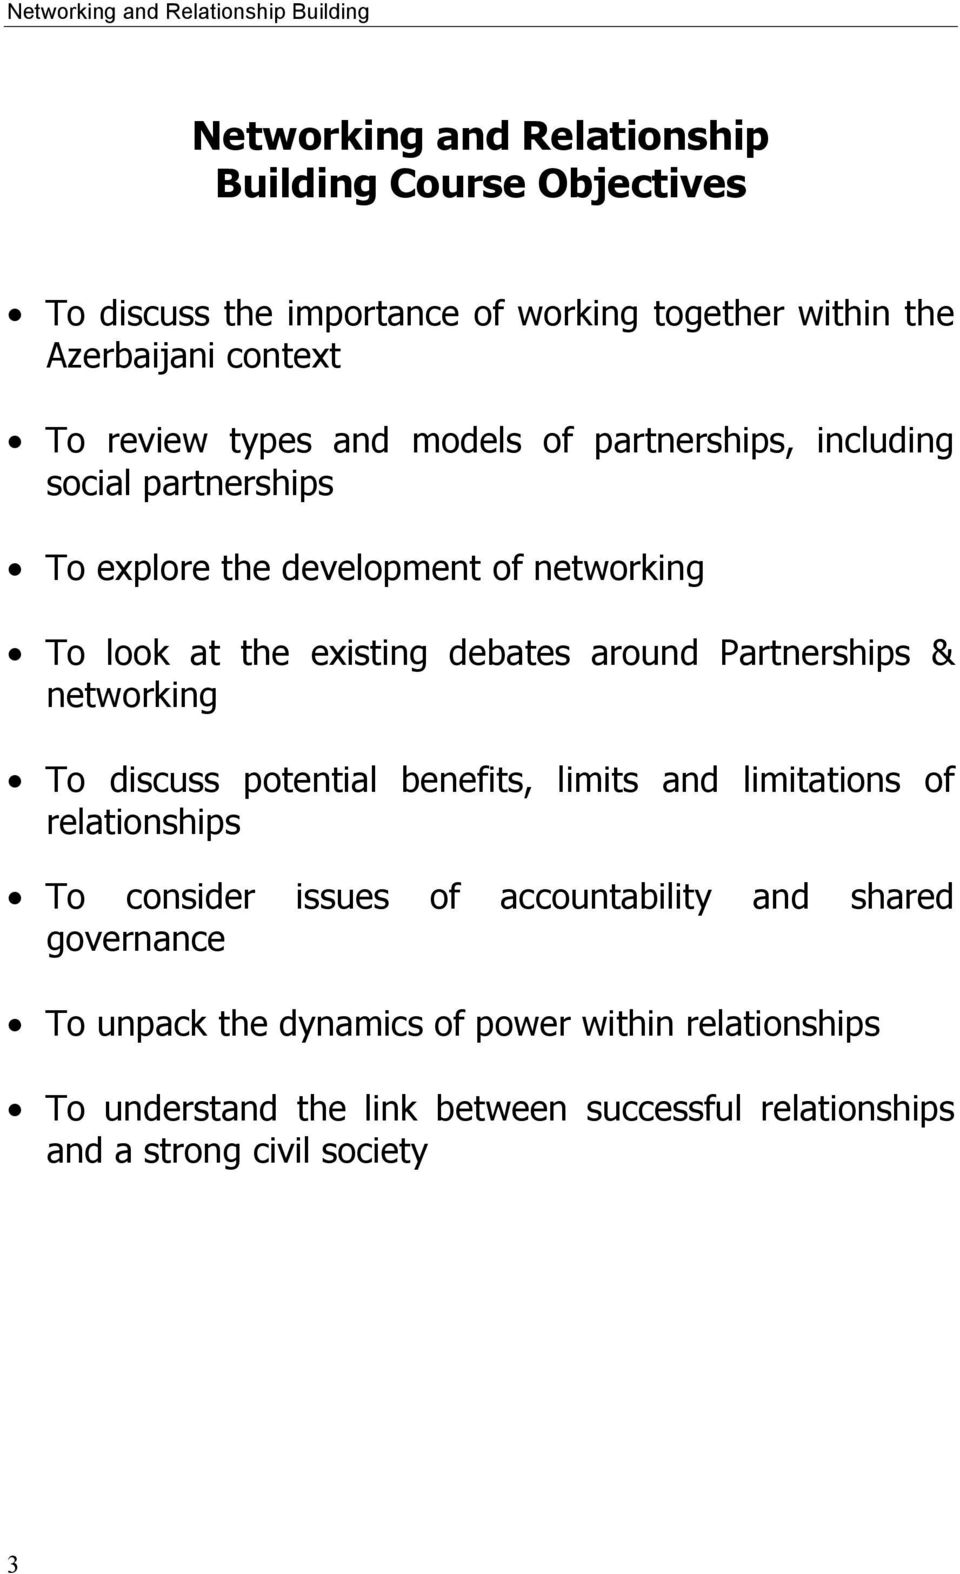 existing debates around Partnerships & networking To discuss potential benefits, limits and limitations of relationships To consider issues of